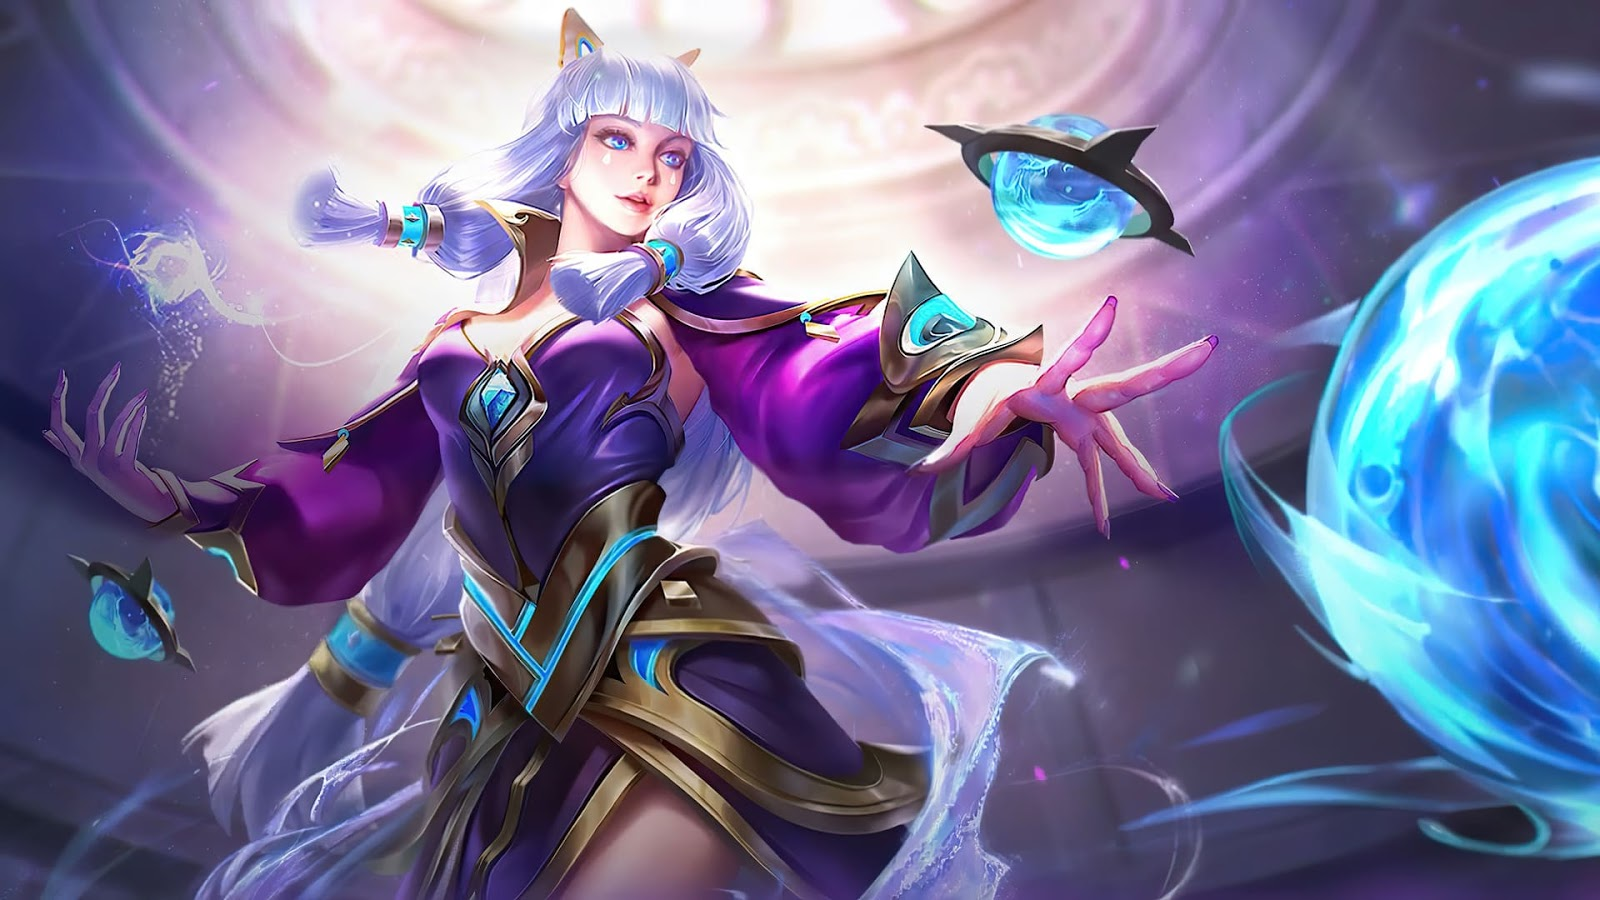 Wallpaper Guinevere Amethyst Dance Skin Mobile Legends HD for PC